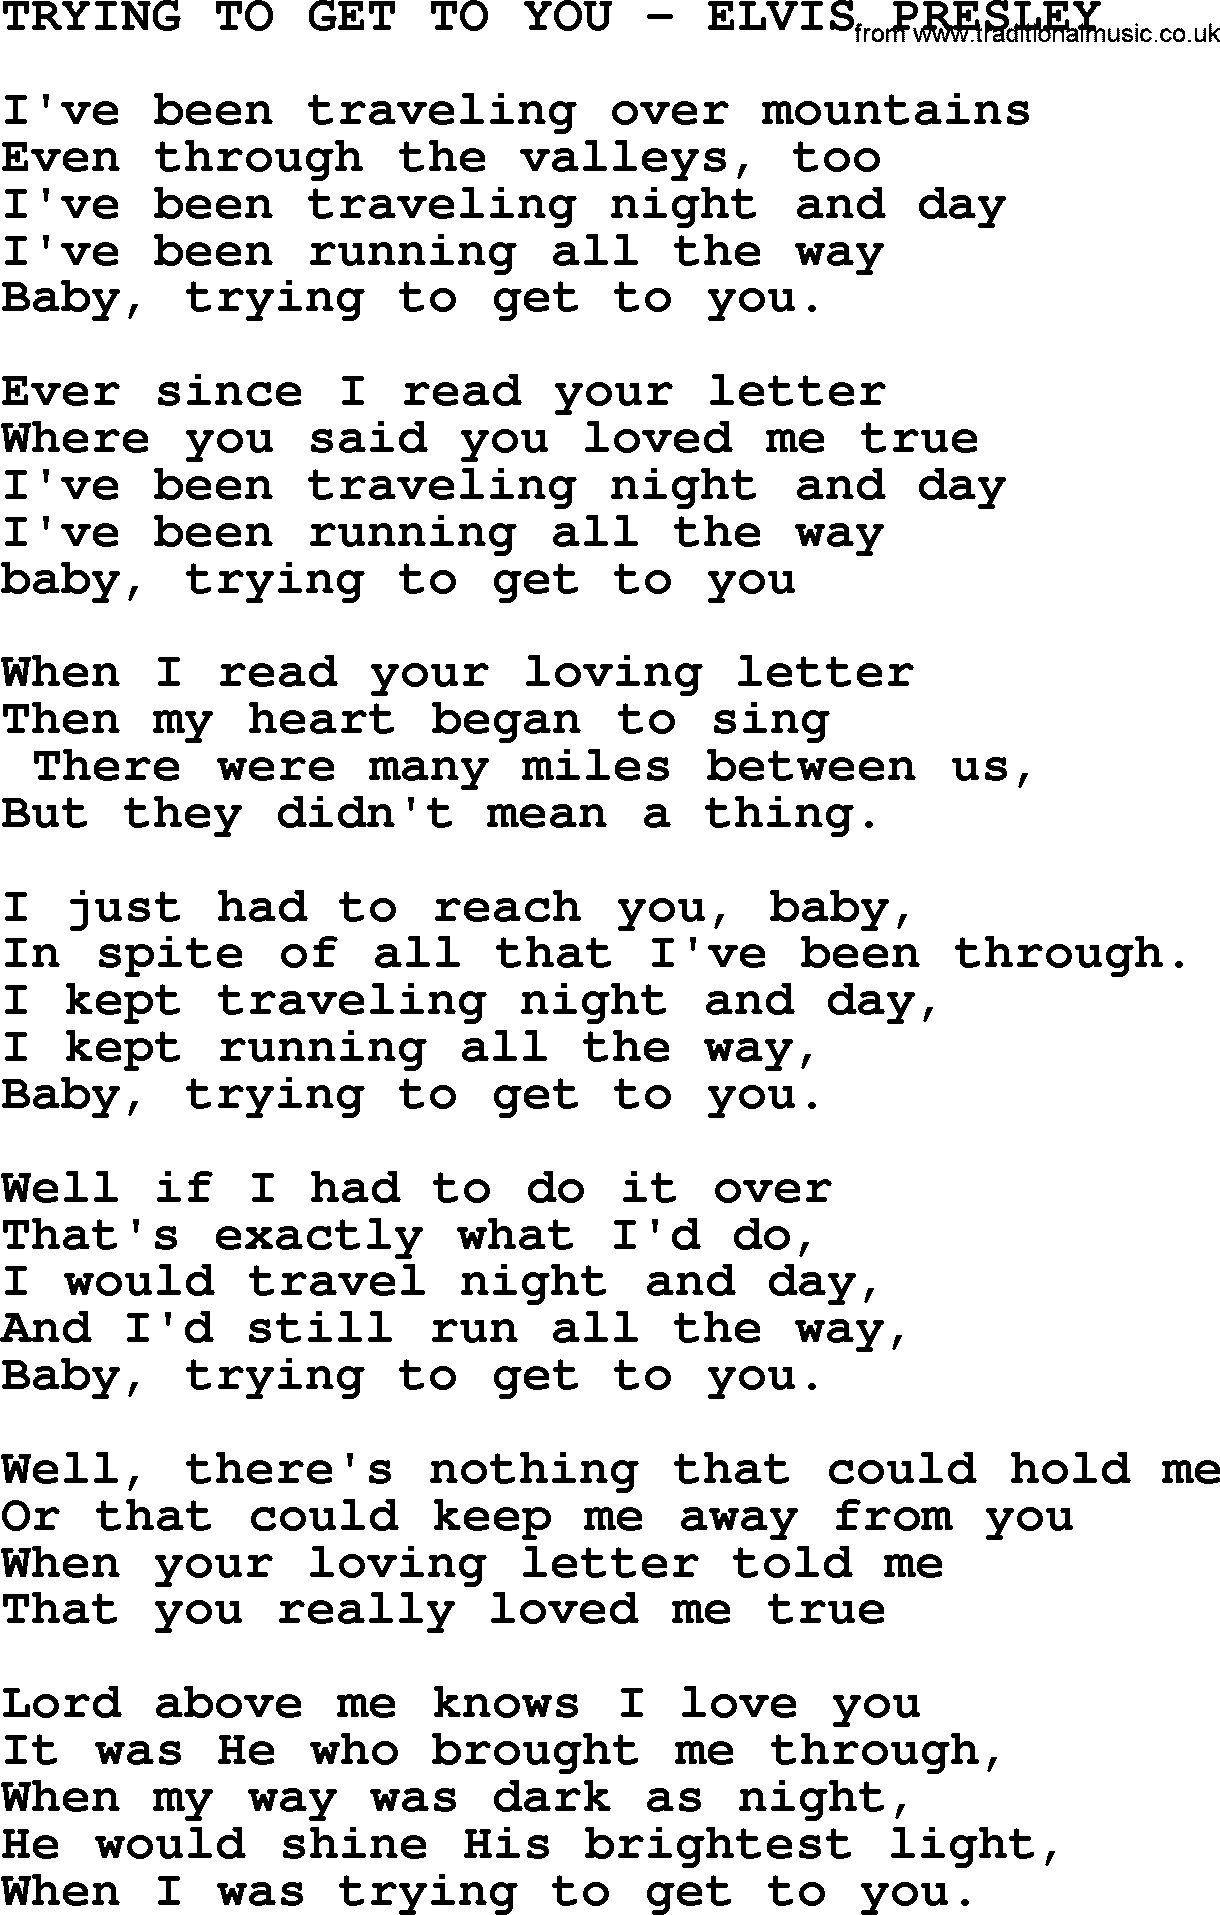 Elvis presley trying to get to you lyrics